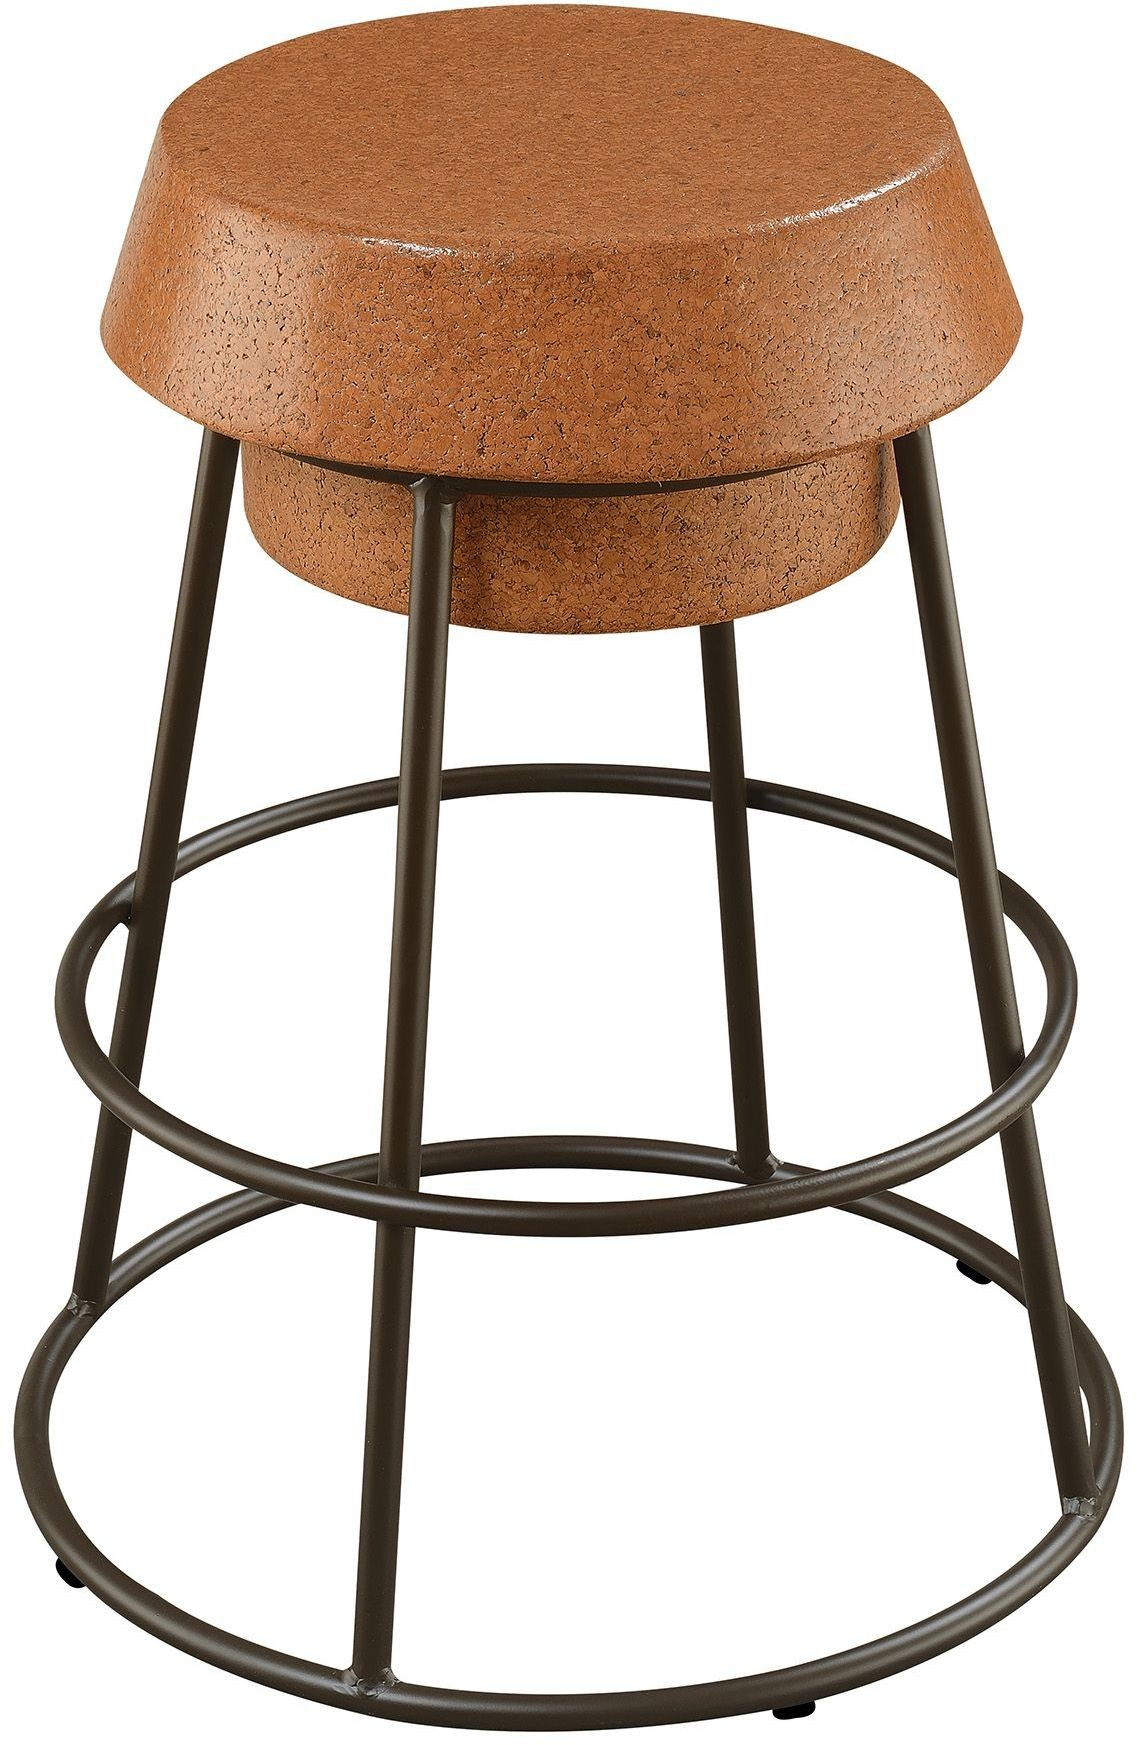 Light Brown Cork Counter Height Stool Set of 2 from ...